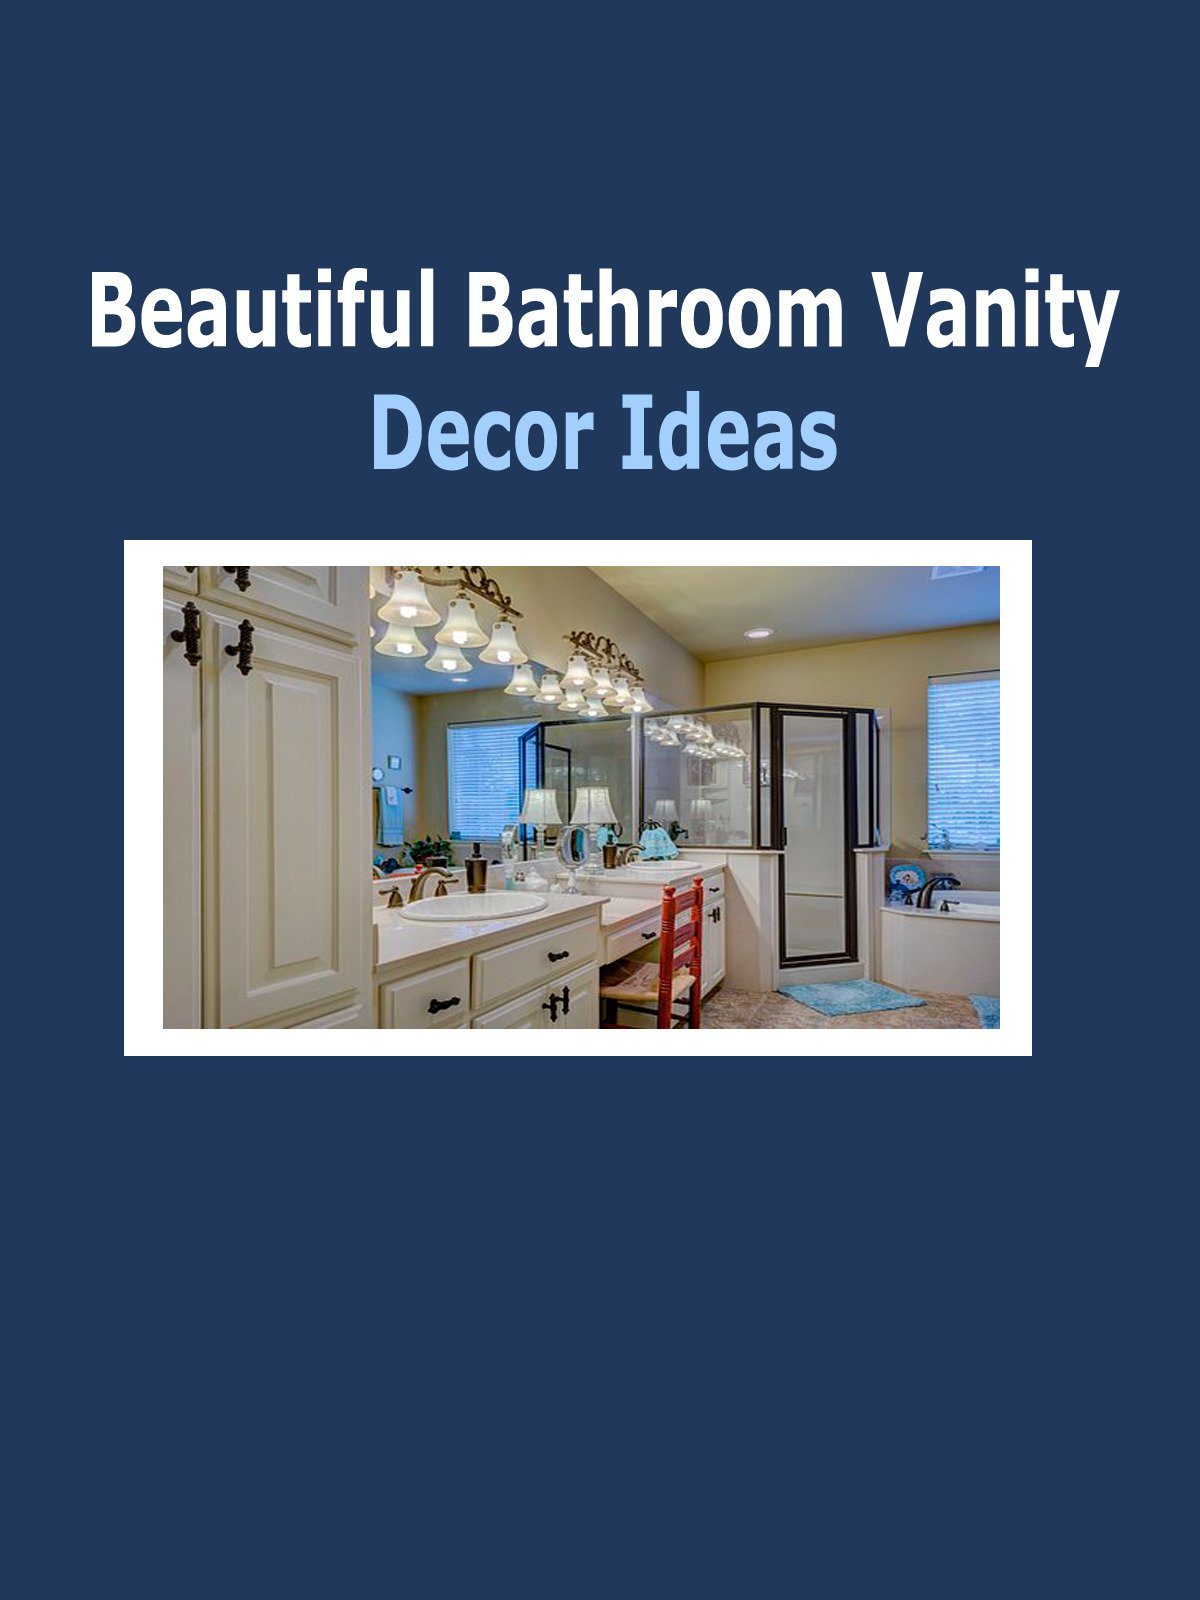 Beautiful Bathroom Vanity Decor Ideas